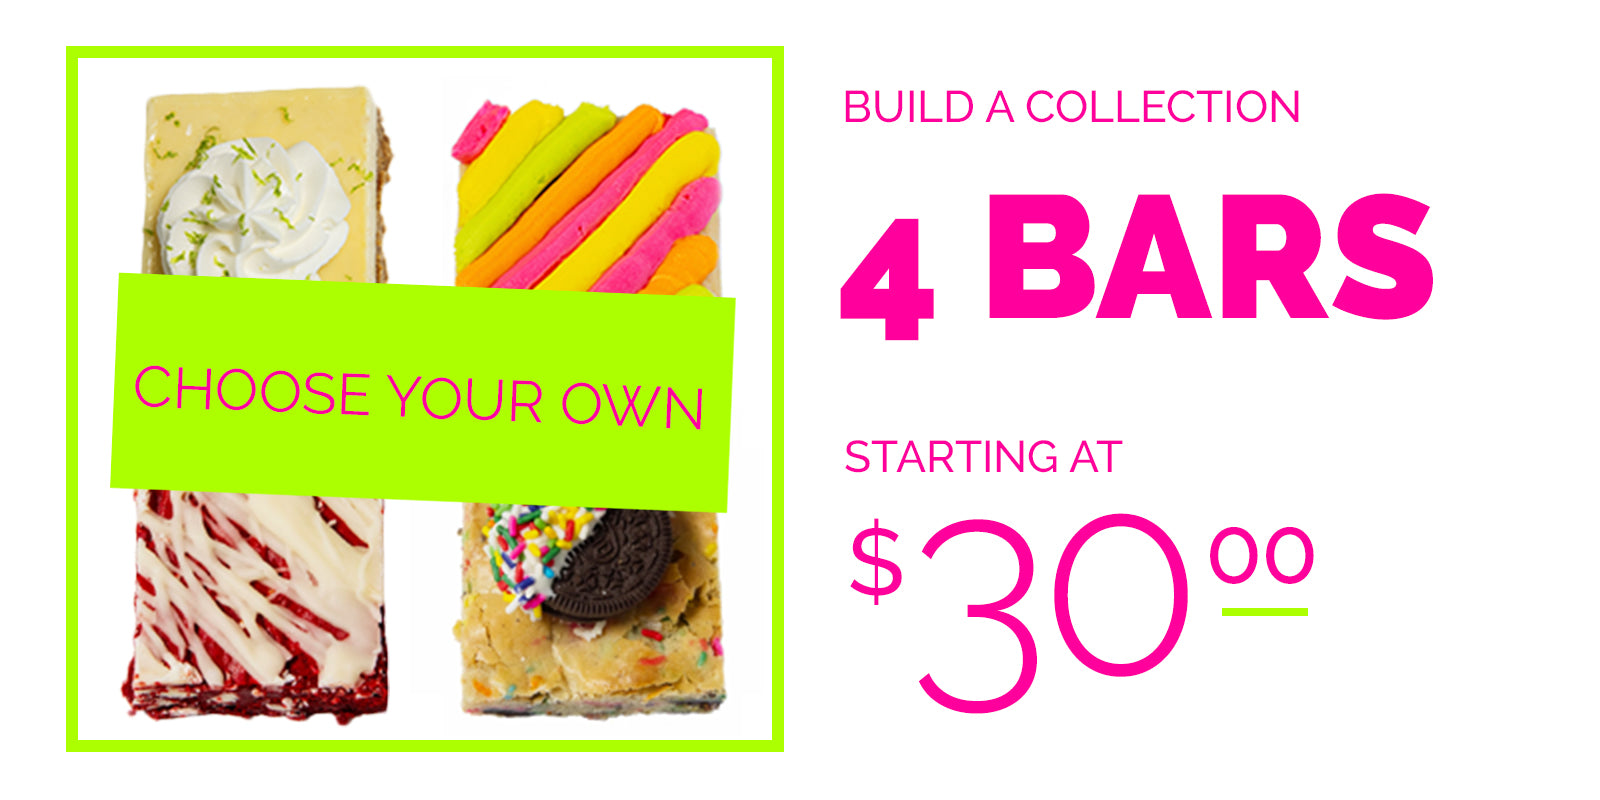 Choose your own 4 bars starting at $30